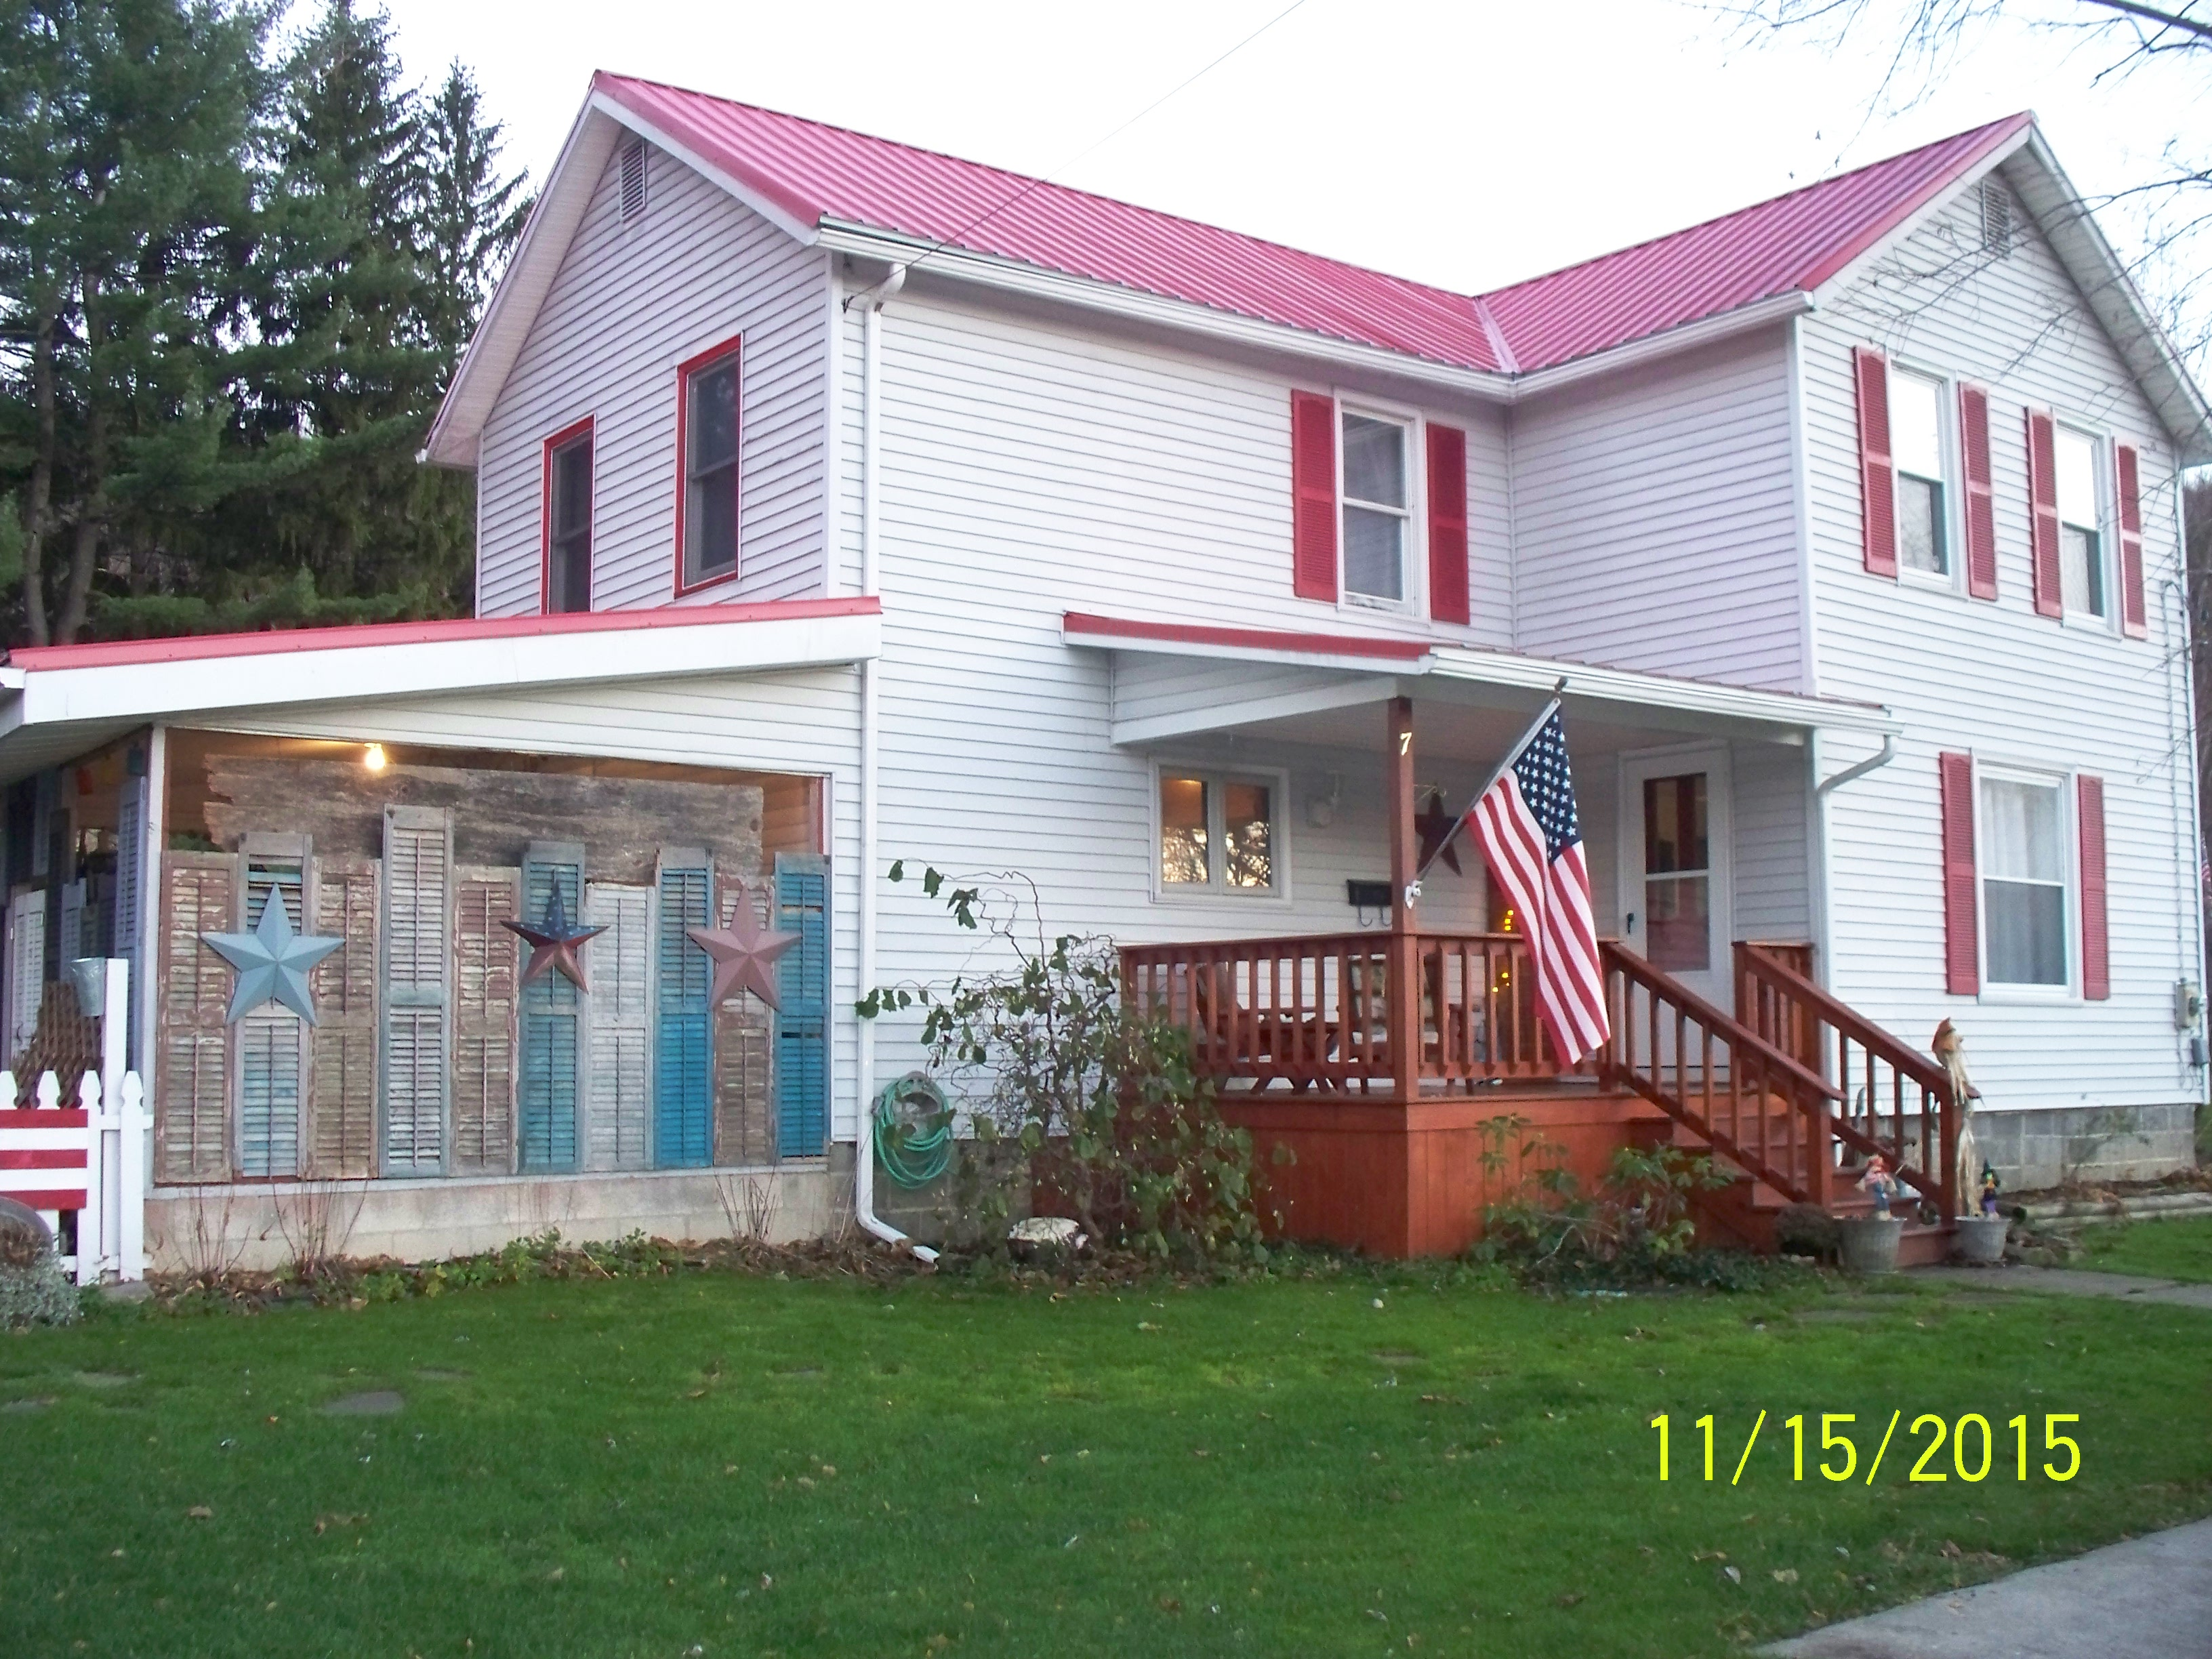 7 Race Street, Canisteo, New York 14823